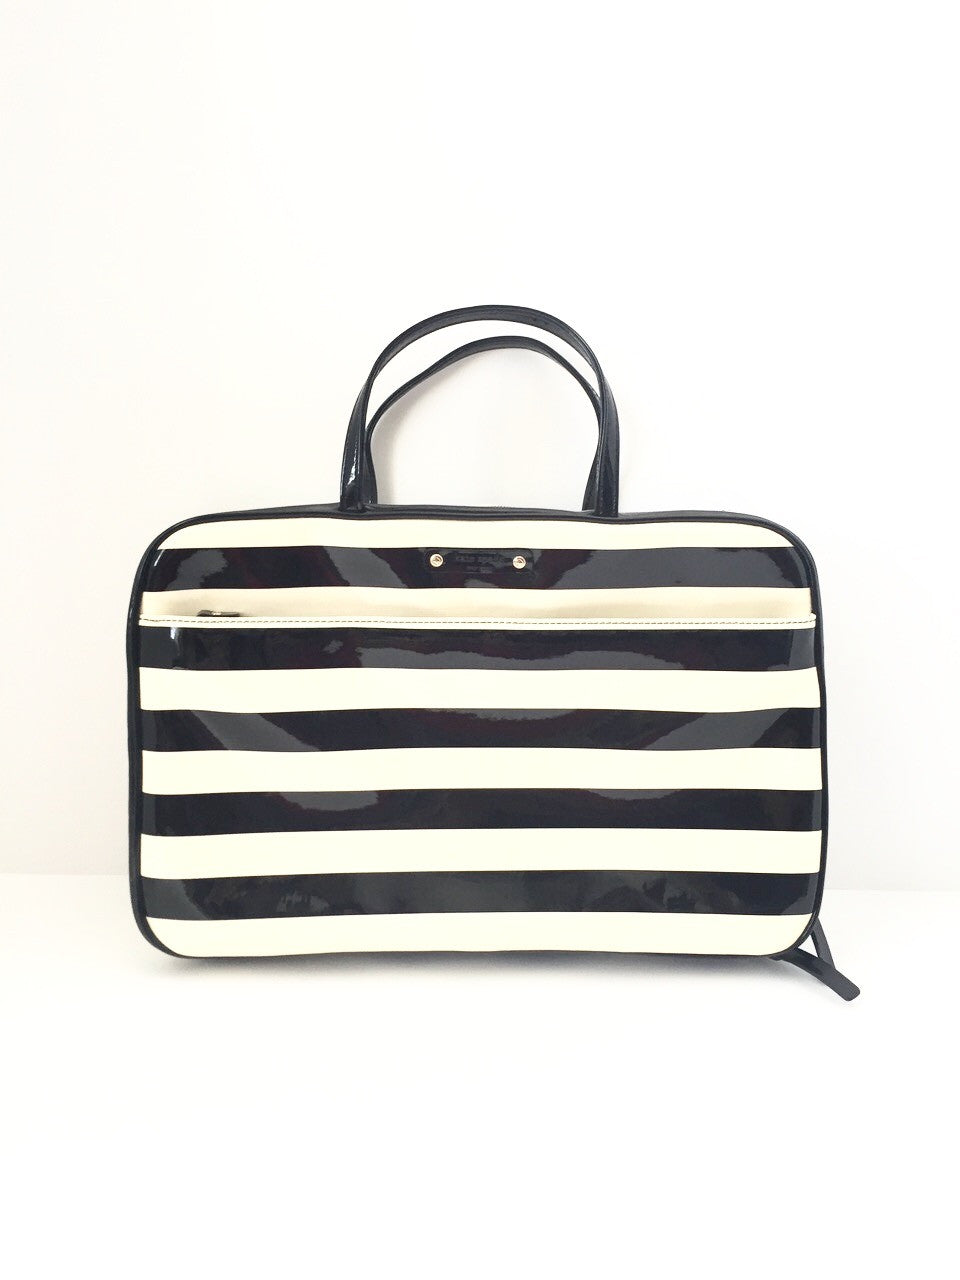 Brand New Kate Spade Black & Cream Stripe Travel Make-Up Bag